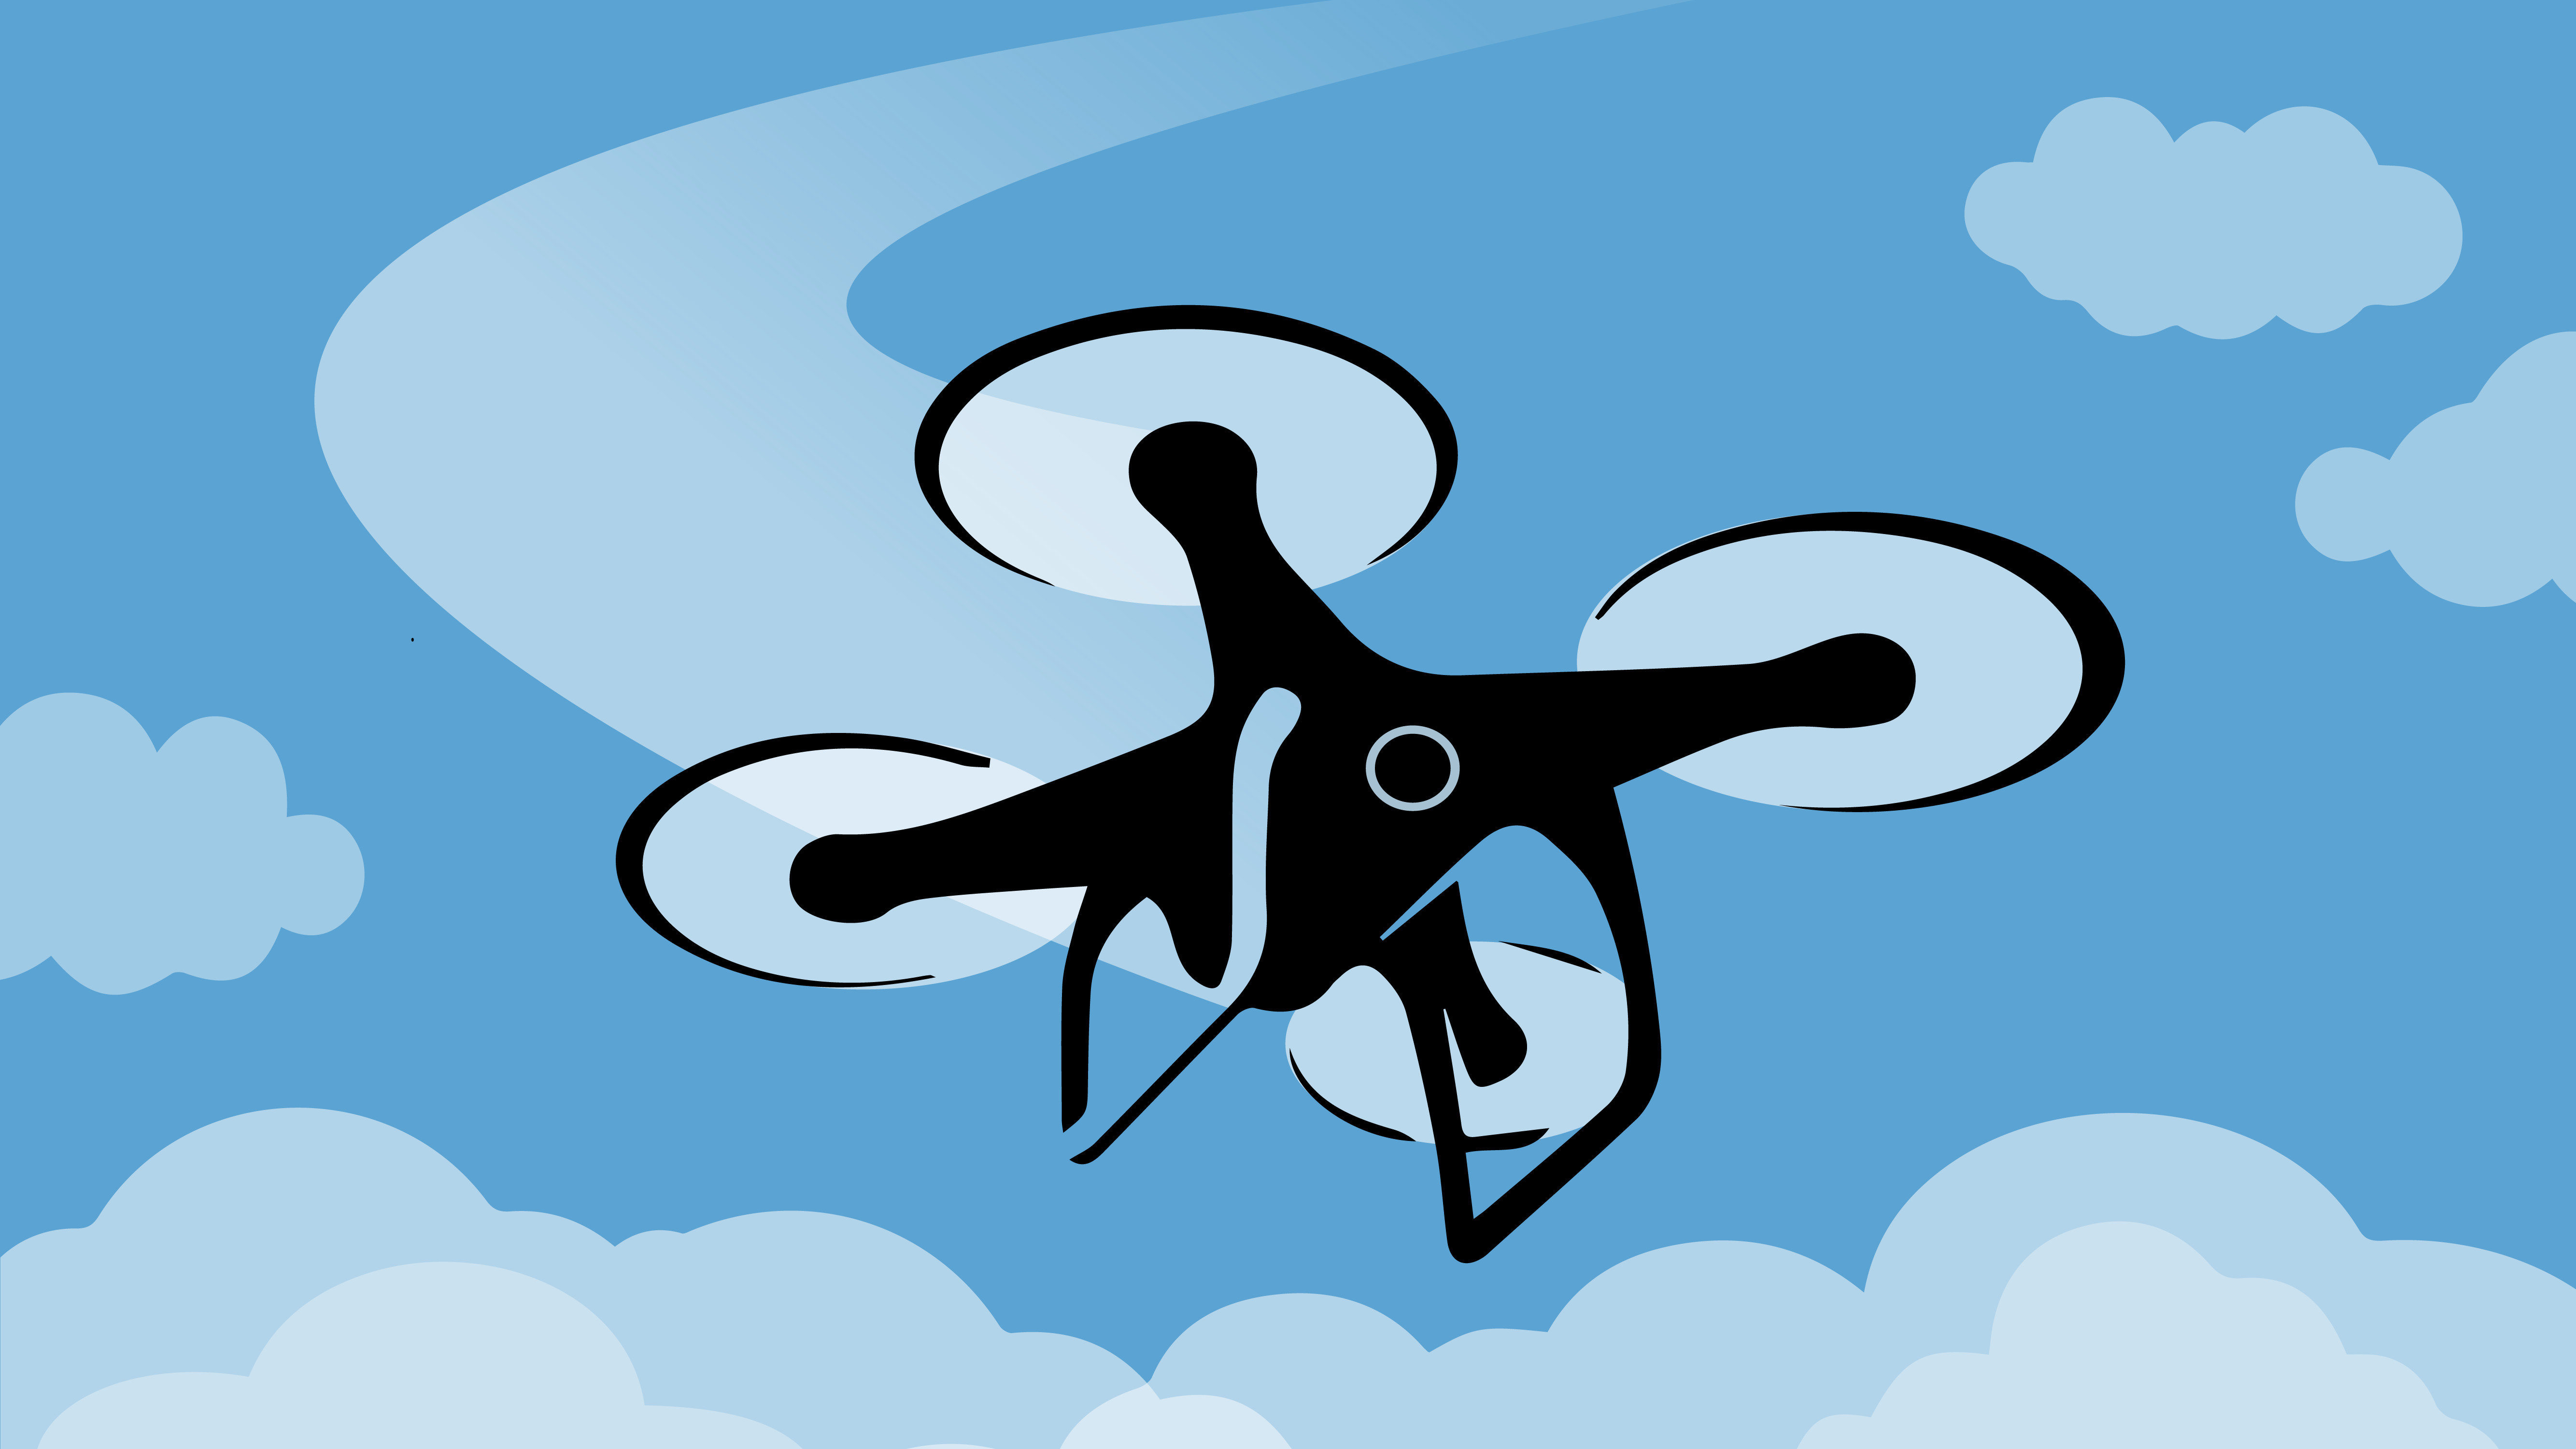 Program: The Ups and Downs of Using Drones for Research